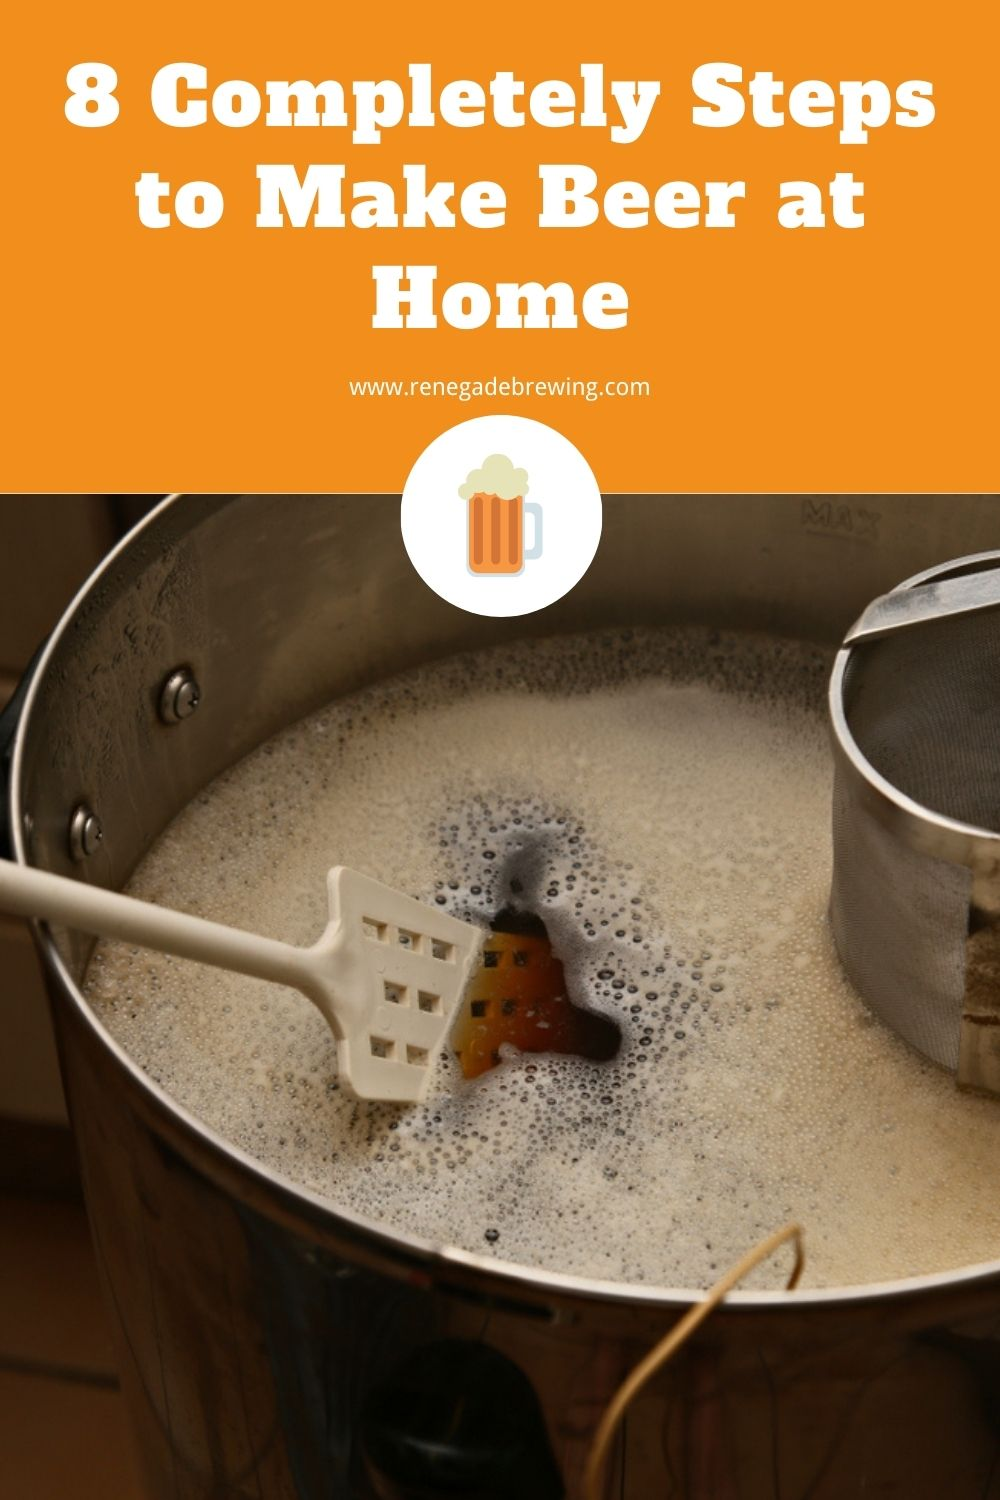 8 Completely Steps to Make Beer at Home 2